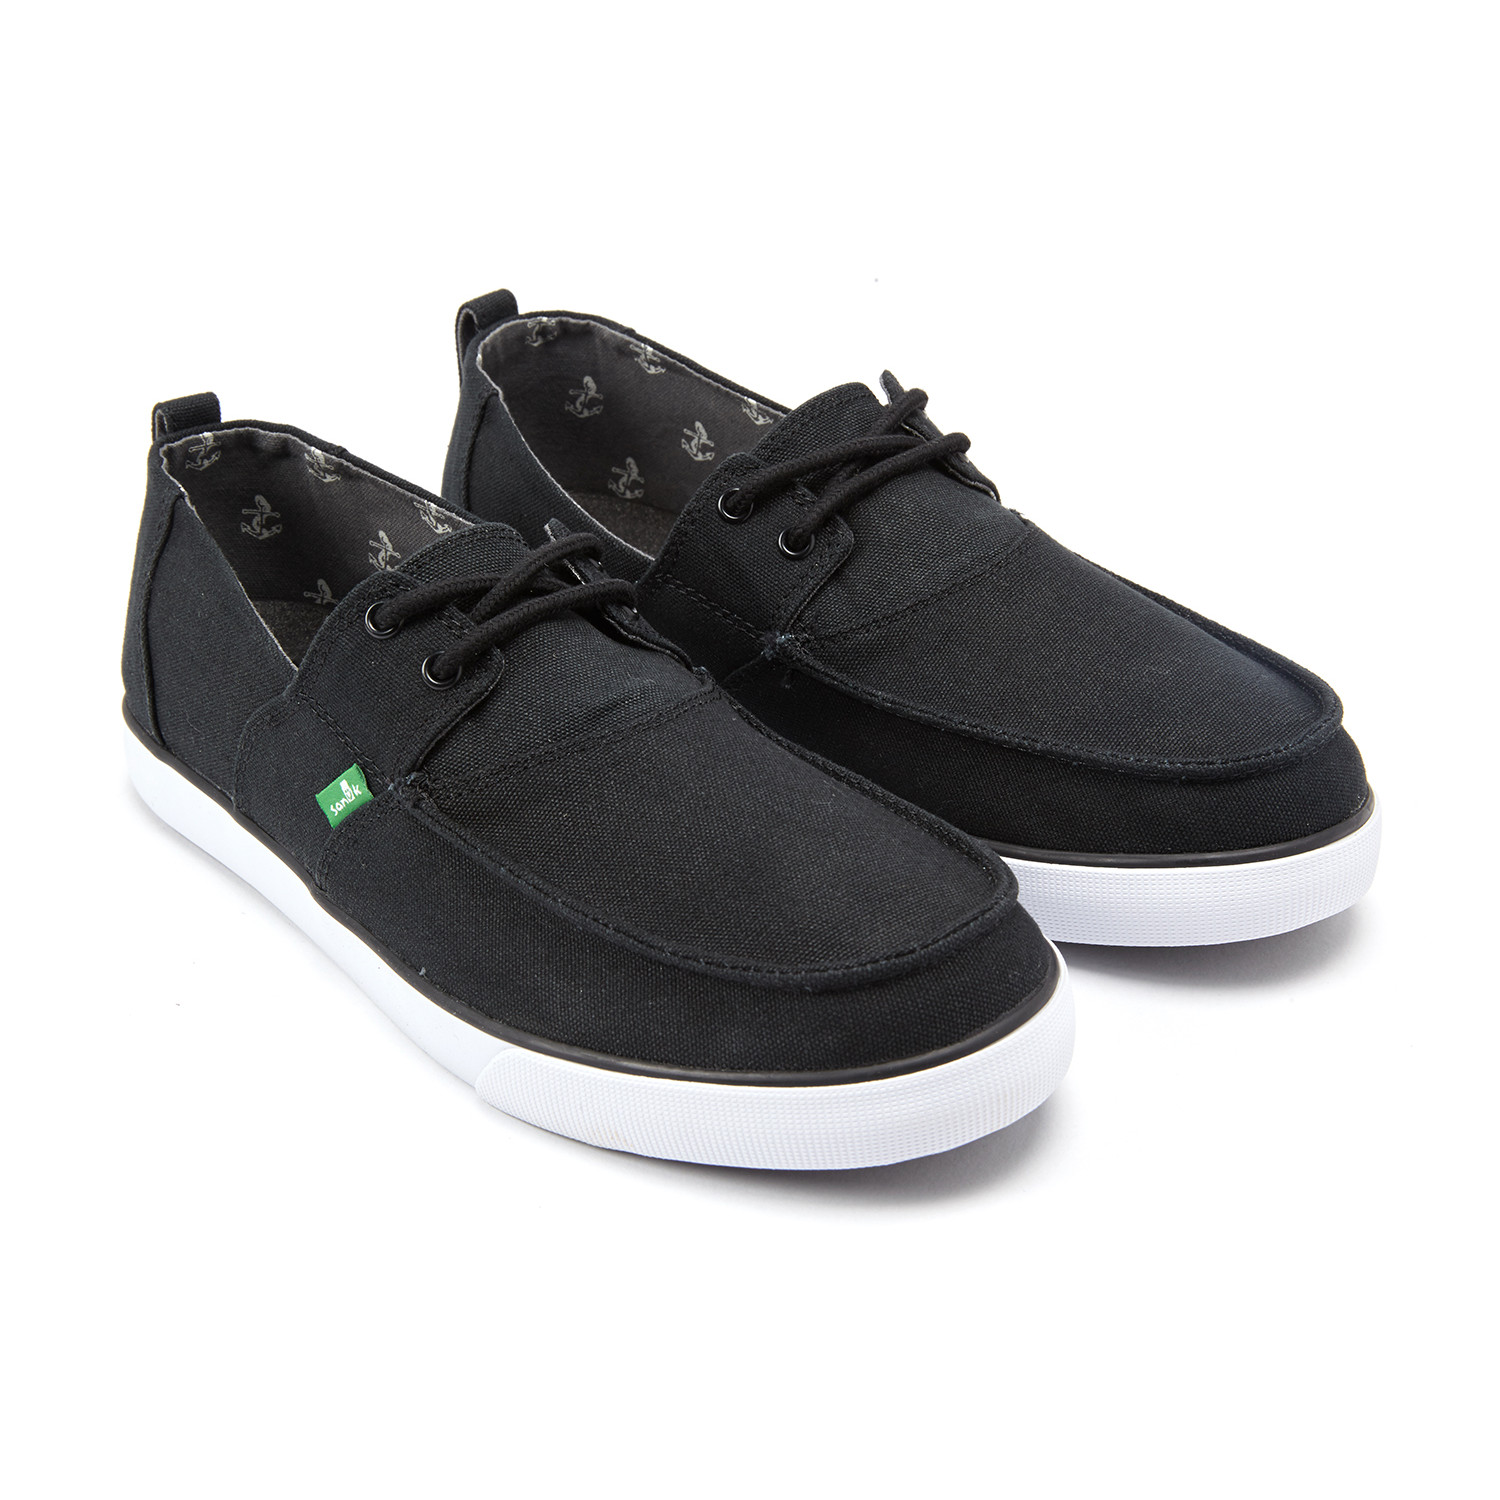 Offshore Boat Shoes // Black (US: 7) - Sanuk Shoes - Touch of Modern